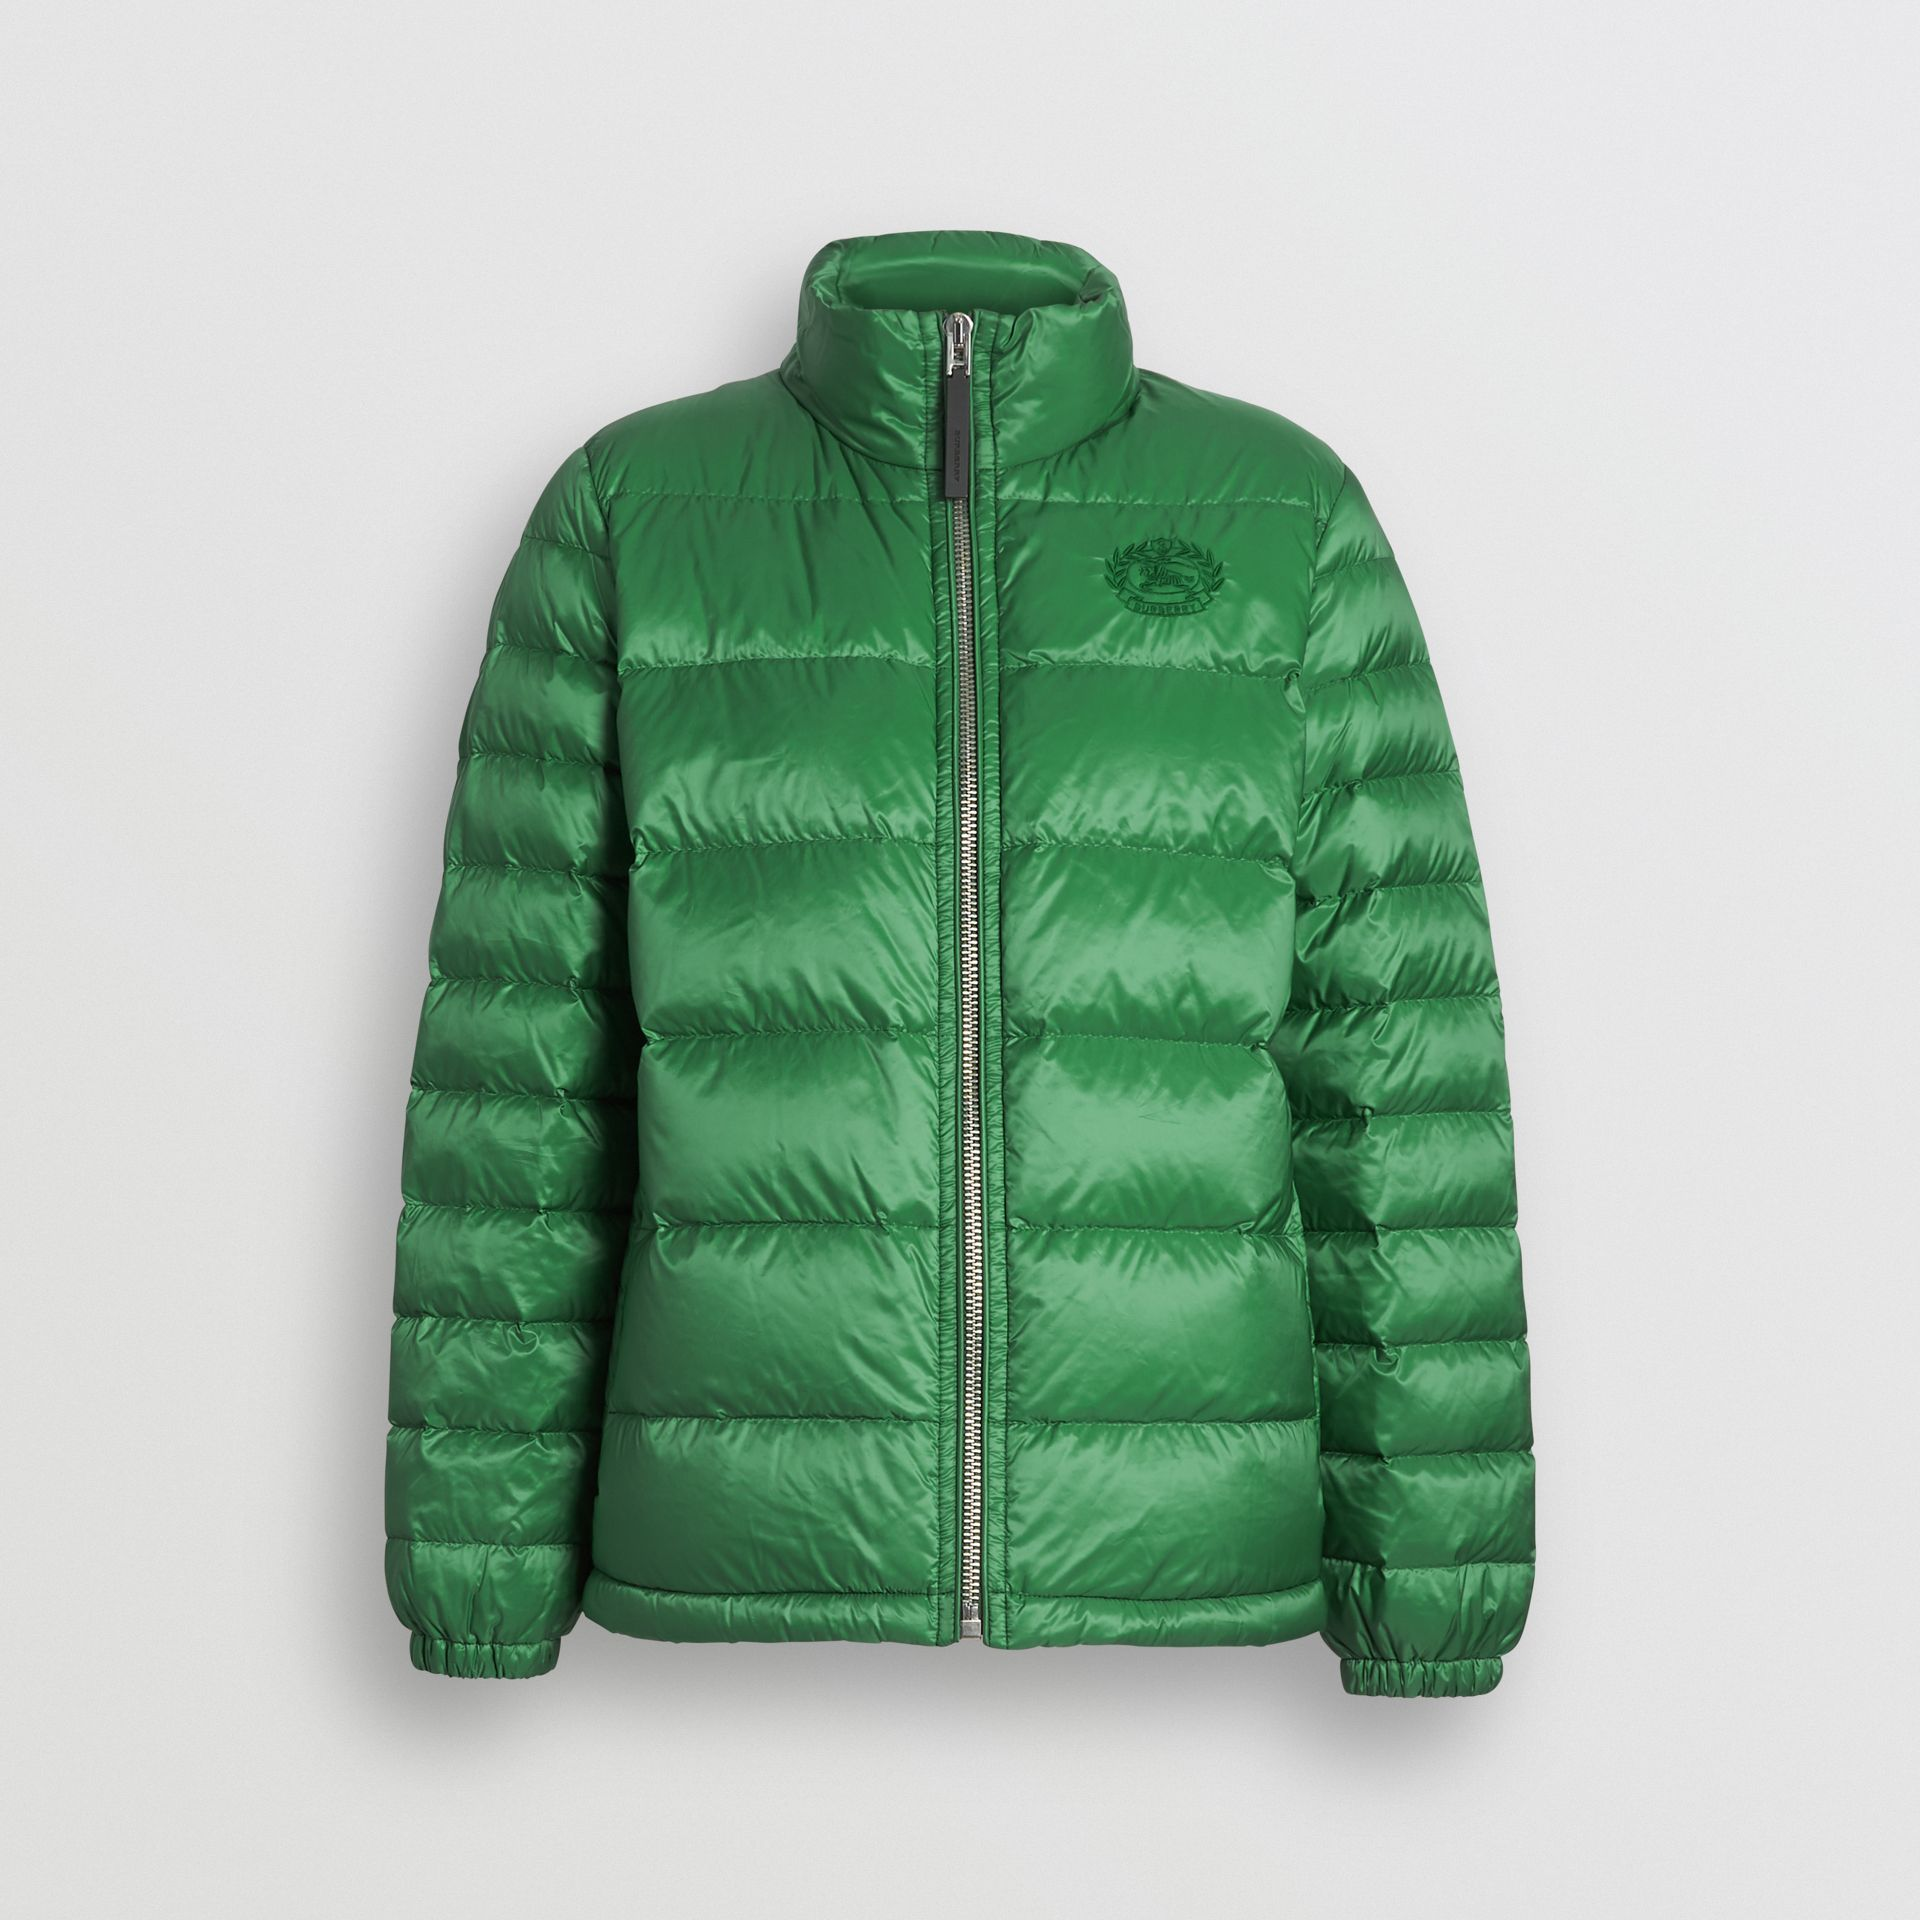 Down-filled Puffer Jacket in Emerald Green - Women | Burberry - gallery image 3